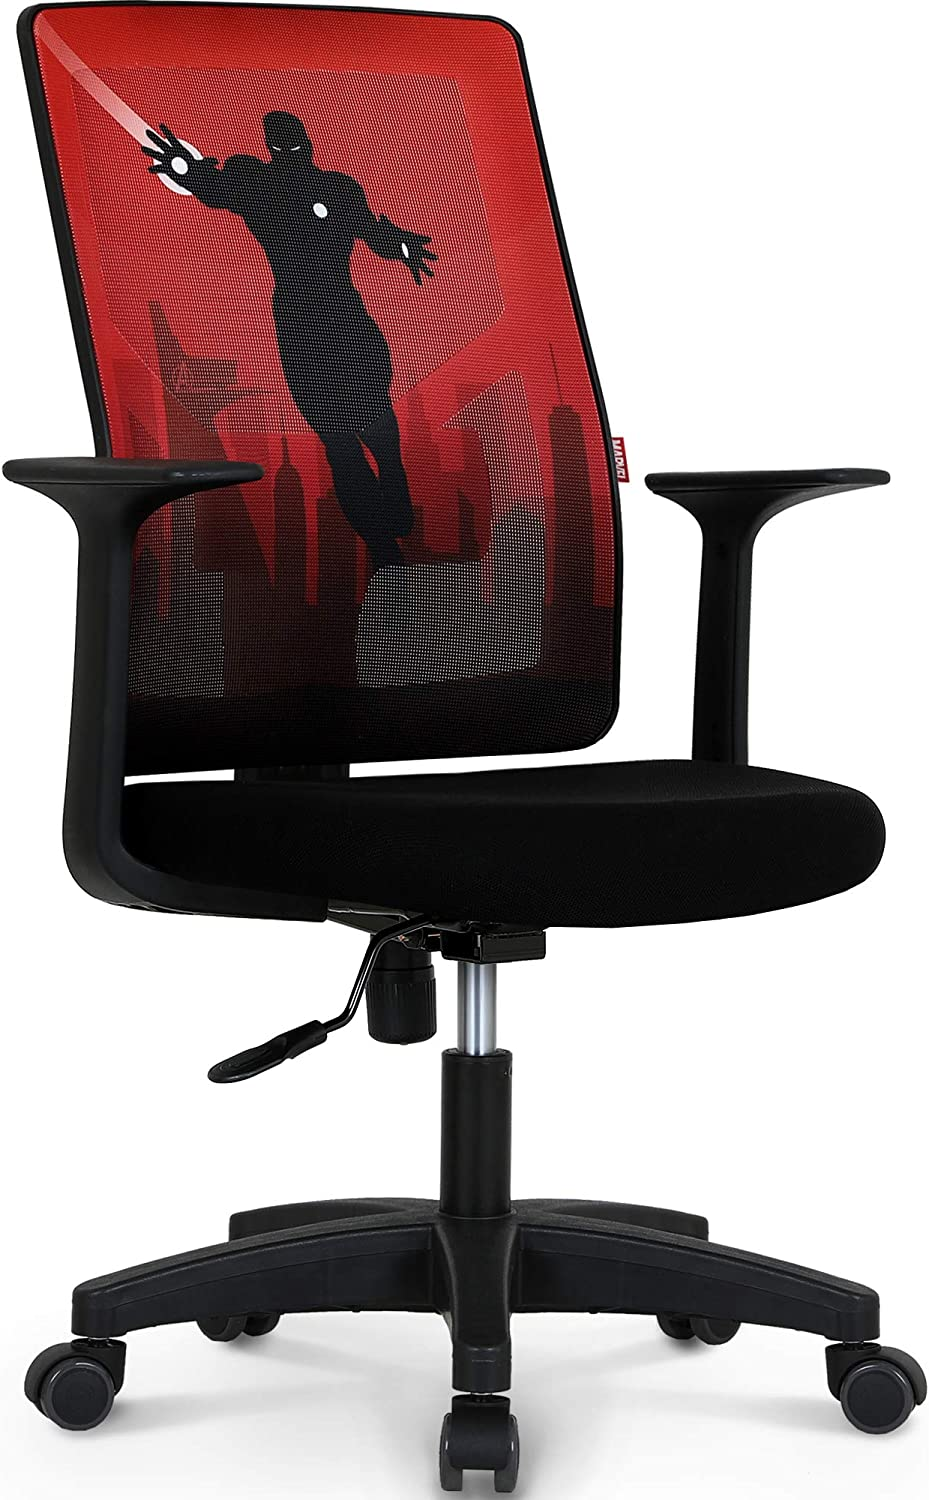 Marvel Avengers Office Chair Computer Desk Chair Gaming - Ergonomic Mid Back Cushion Lumbar Support Wheels Comfortable Mesh Racing Seat Adjustable Swivel Rolling Home Executive